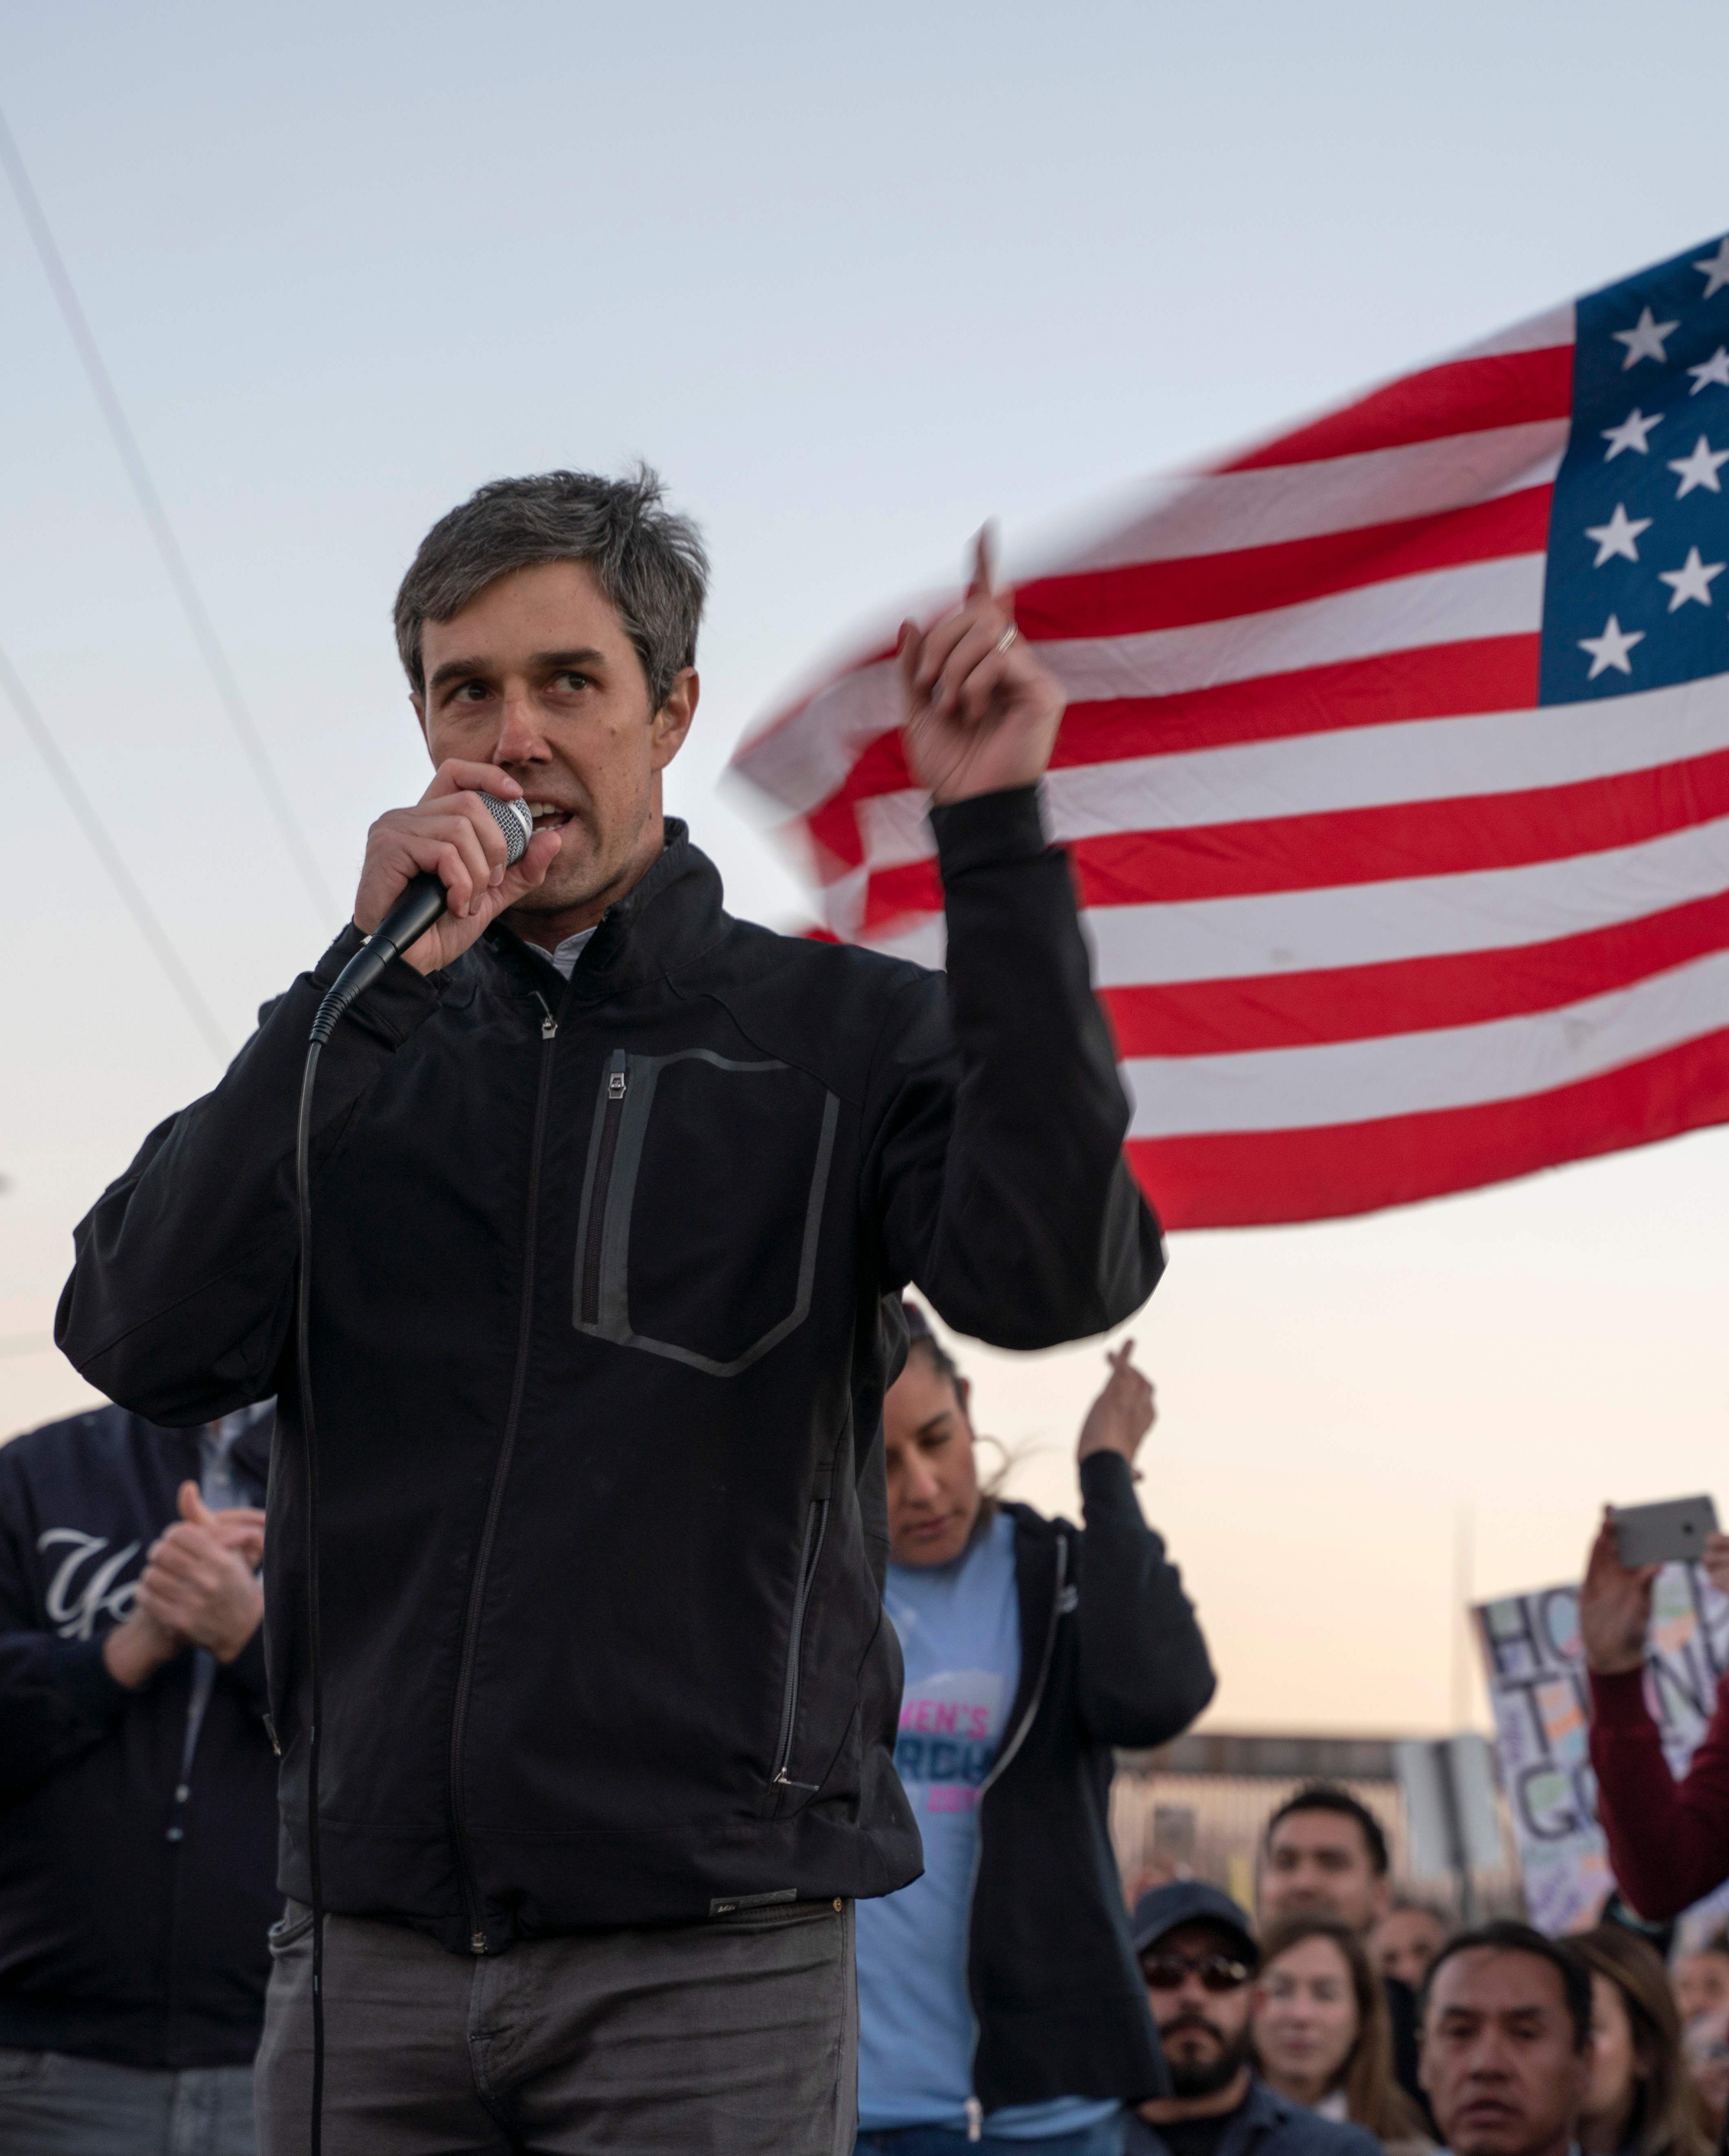 """Beto O'Rourke speaks to a crowd of marchers during the """"March for Truth"""" in El Paso on Monday. The march took place at the same time as Trump's rally and culminated at a rally inside a baseball stadium."""